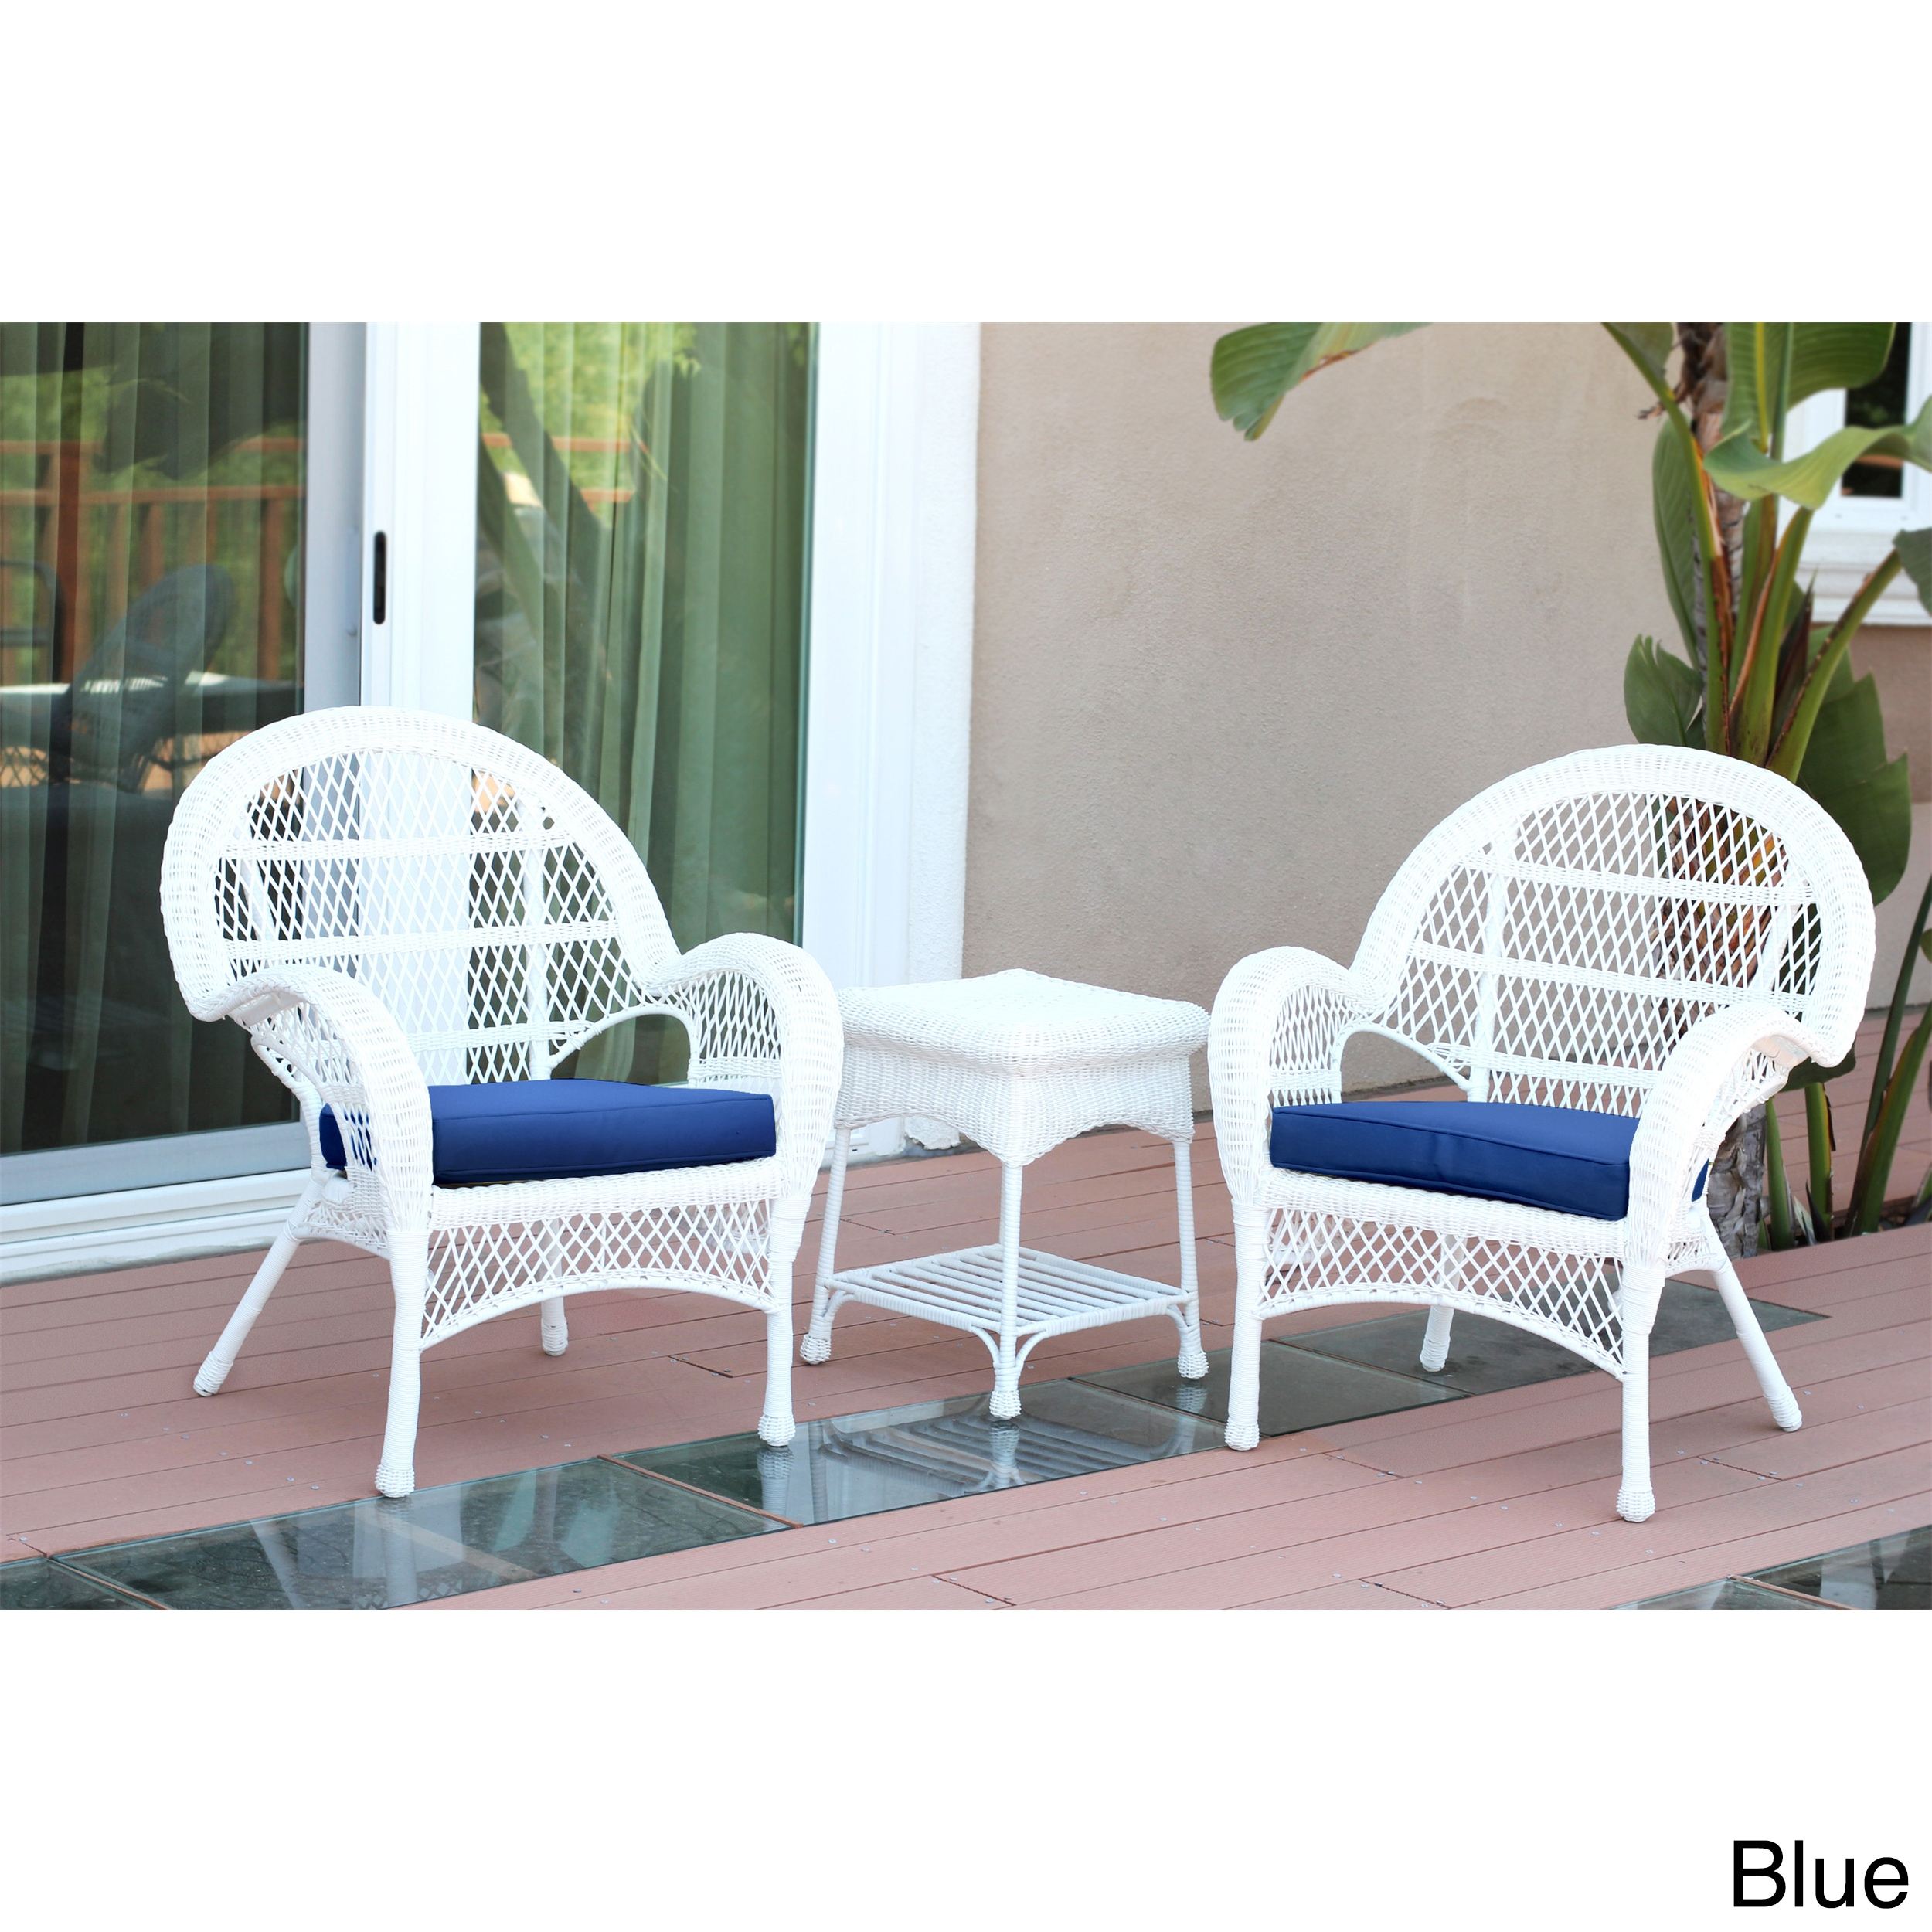 Jeco Santa Maria White Wicker Chair And End Table Set wit...